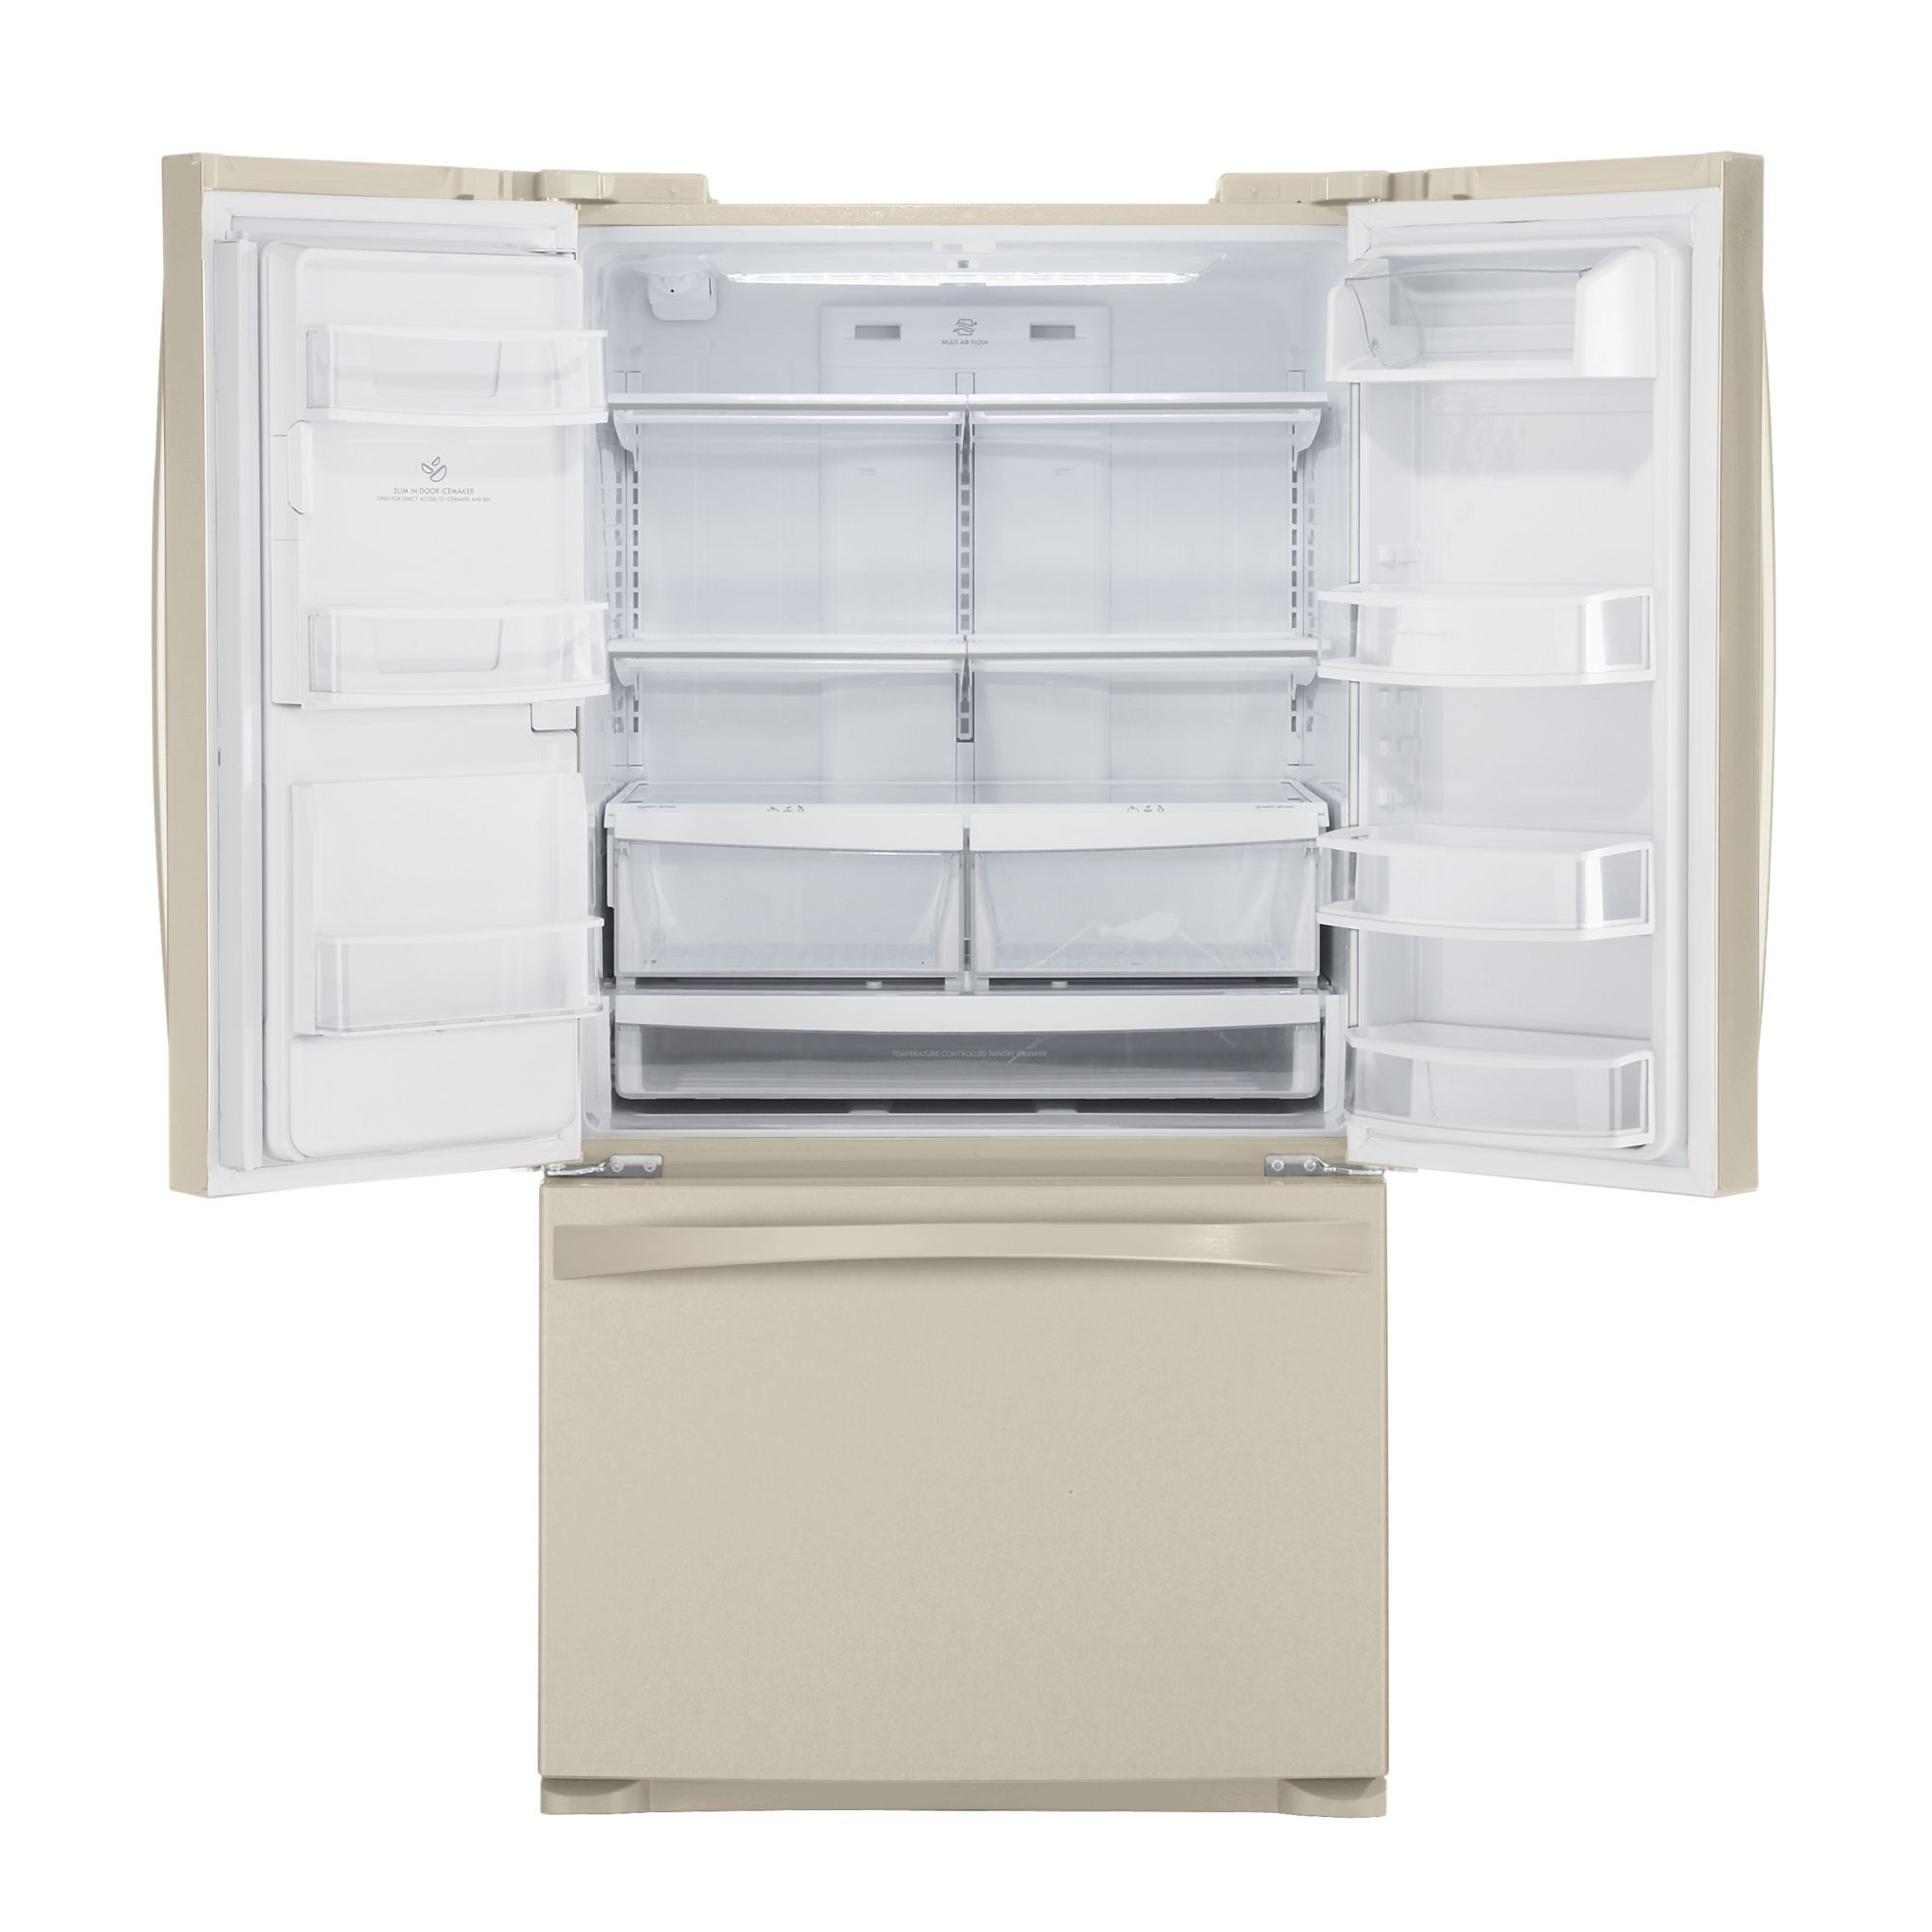 Kenmore Elite 27.6 cu. ft. French Door Bottom-Freezer Refrigerator - Bisque